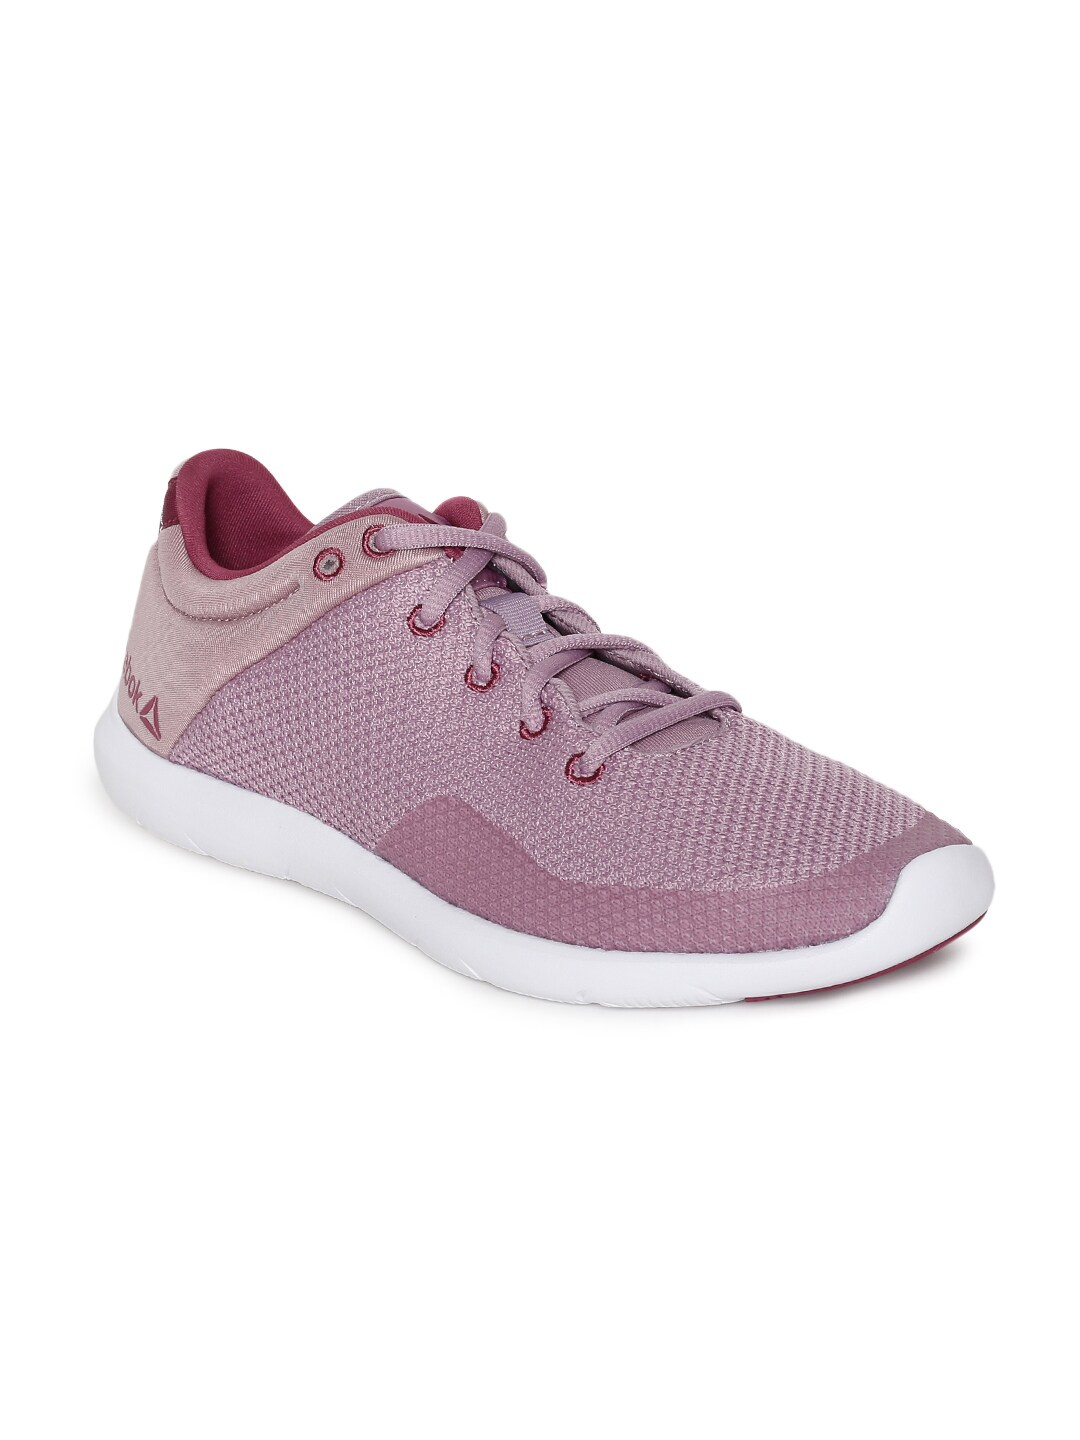 3d3de7cc83b Reebok - Buy Reebok Footwear   Apparel In India